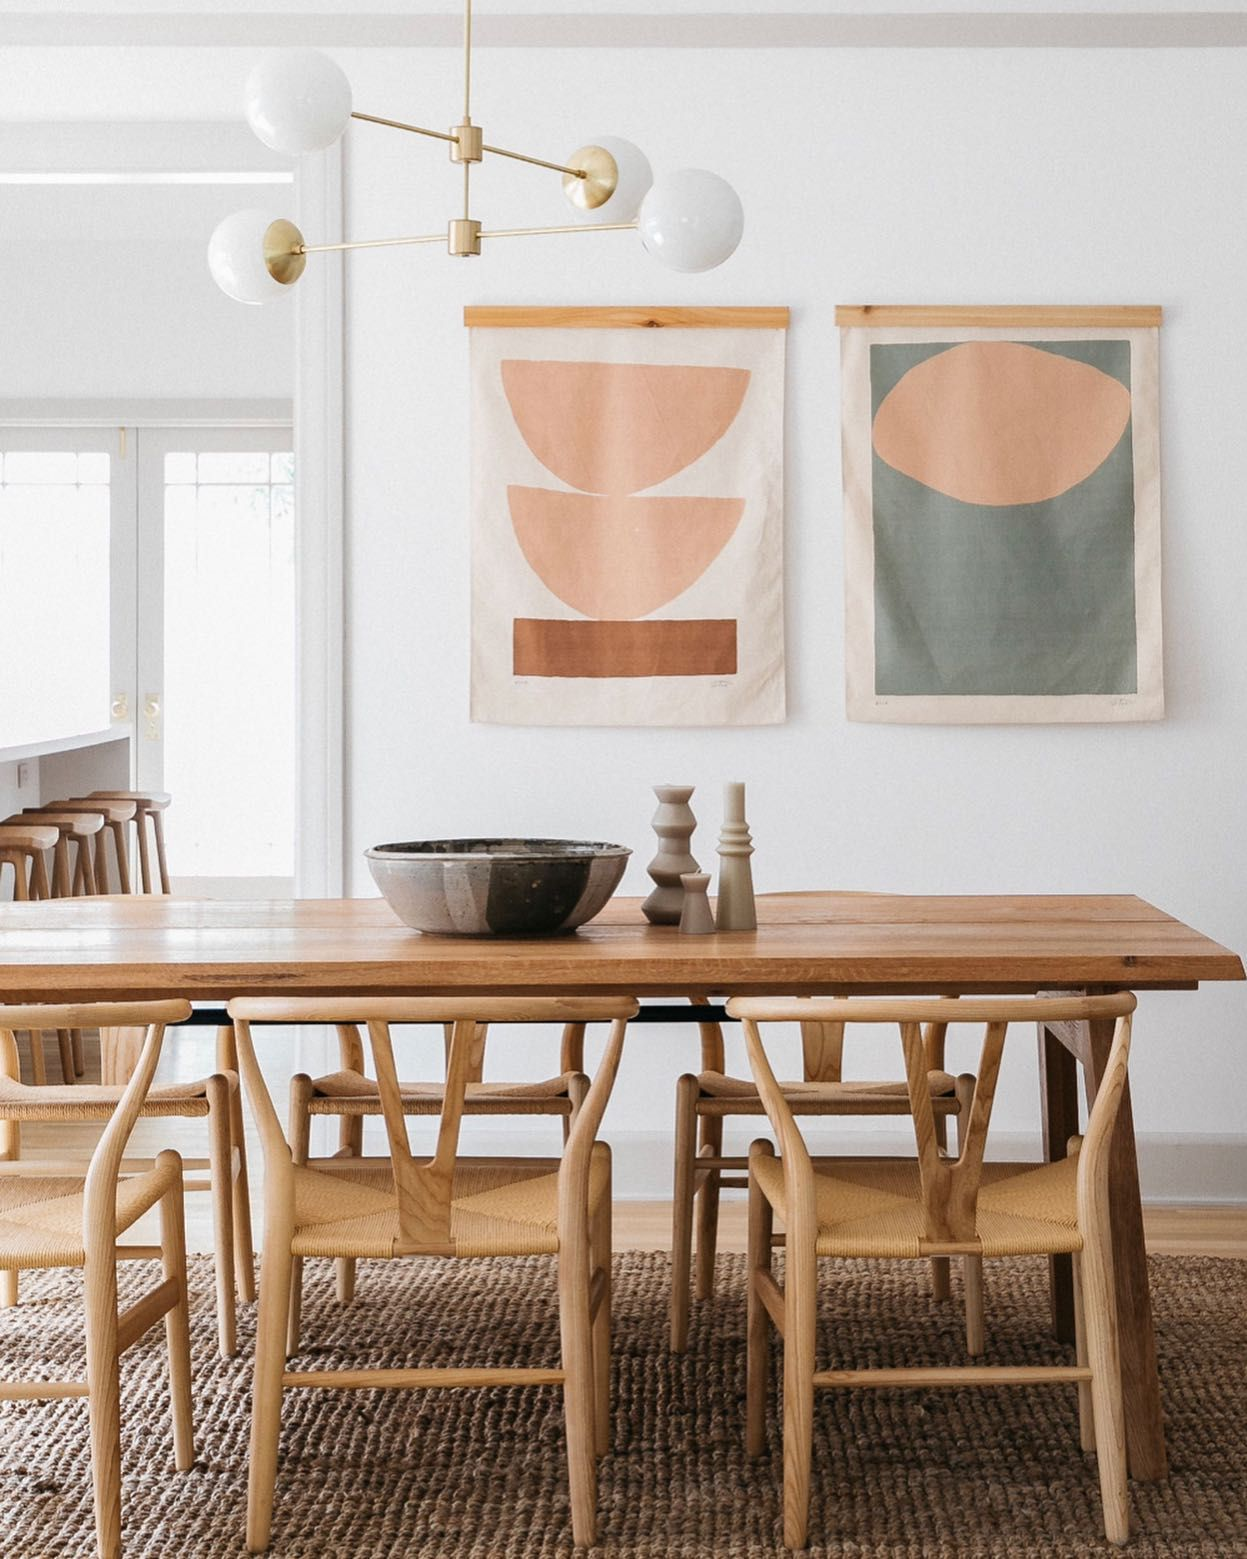 Mid Century Modern Dining Tables Article Midcentury Modern Dining Table Modern Dining Table Mid Century Modern Dining Room